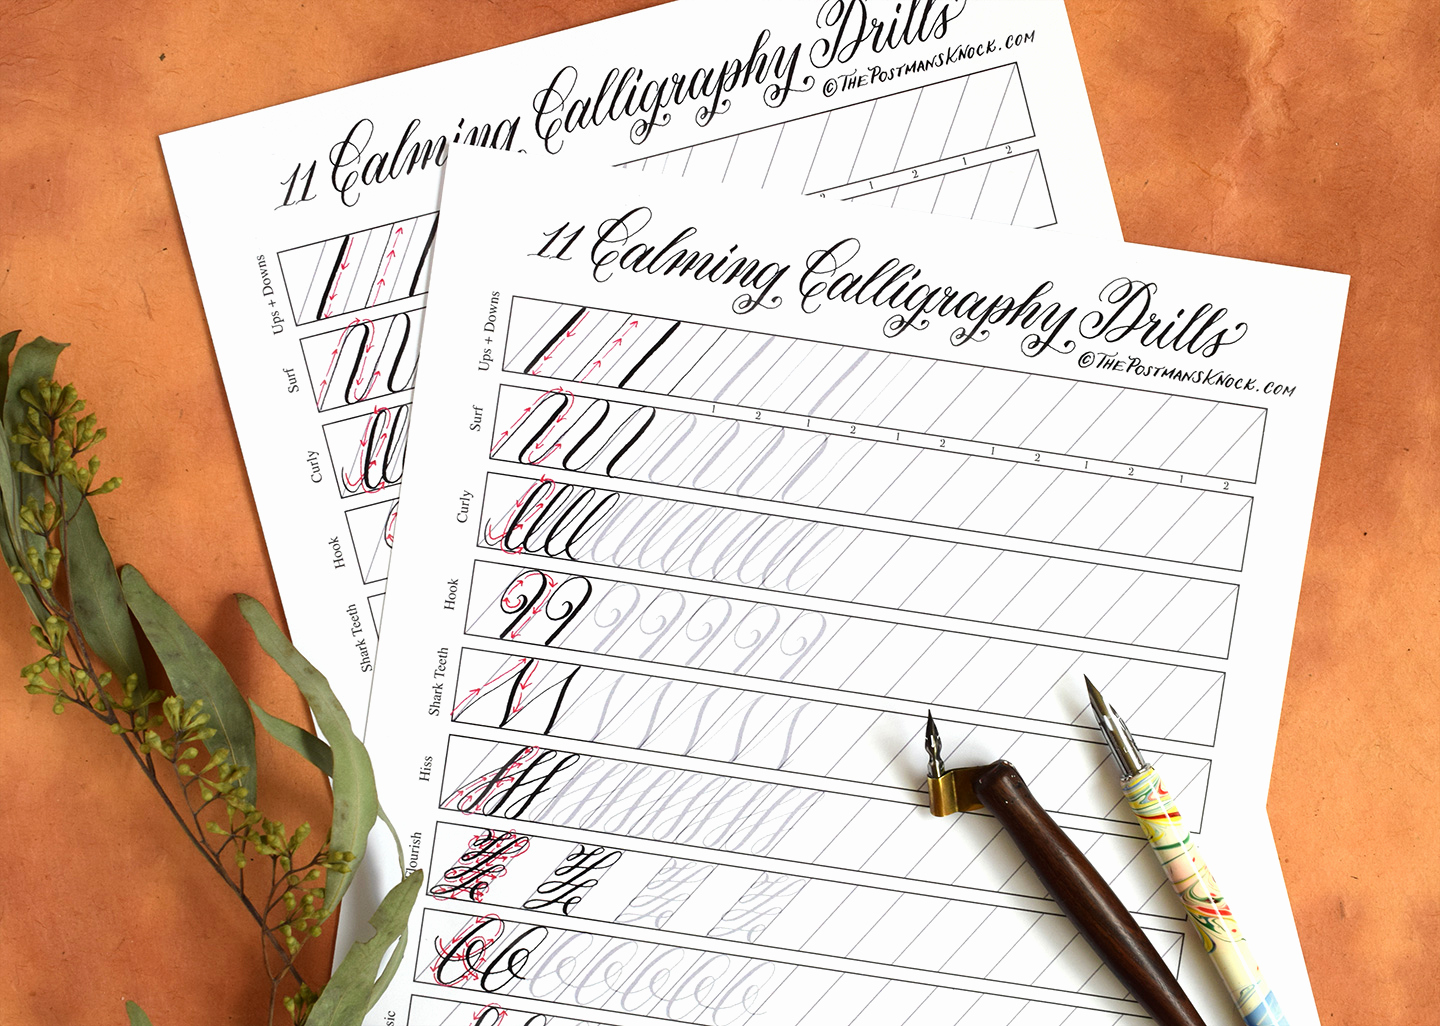 Free Calligraphy Worksheets Printable New 11 Calming Calligraphy Drills Printable Free Download